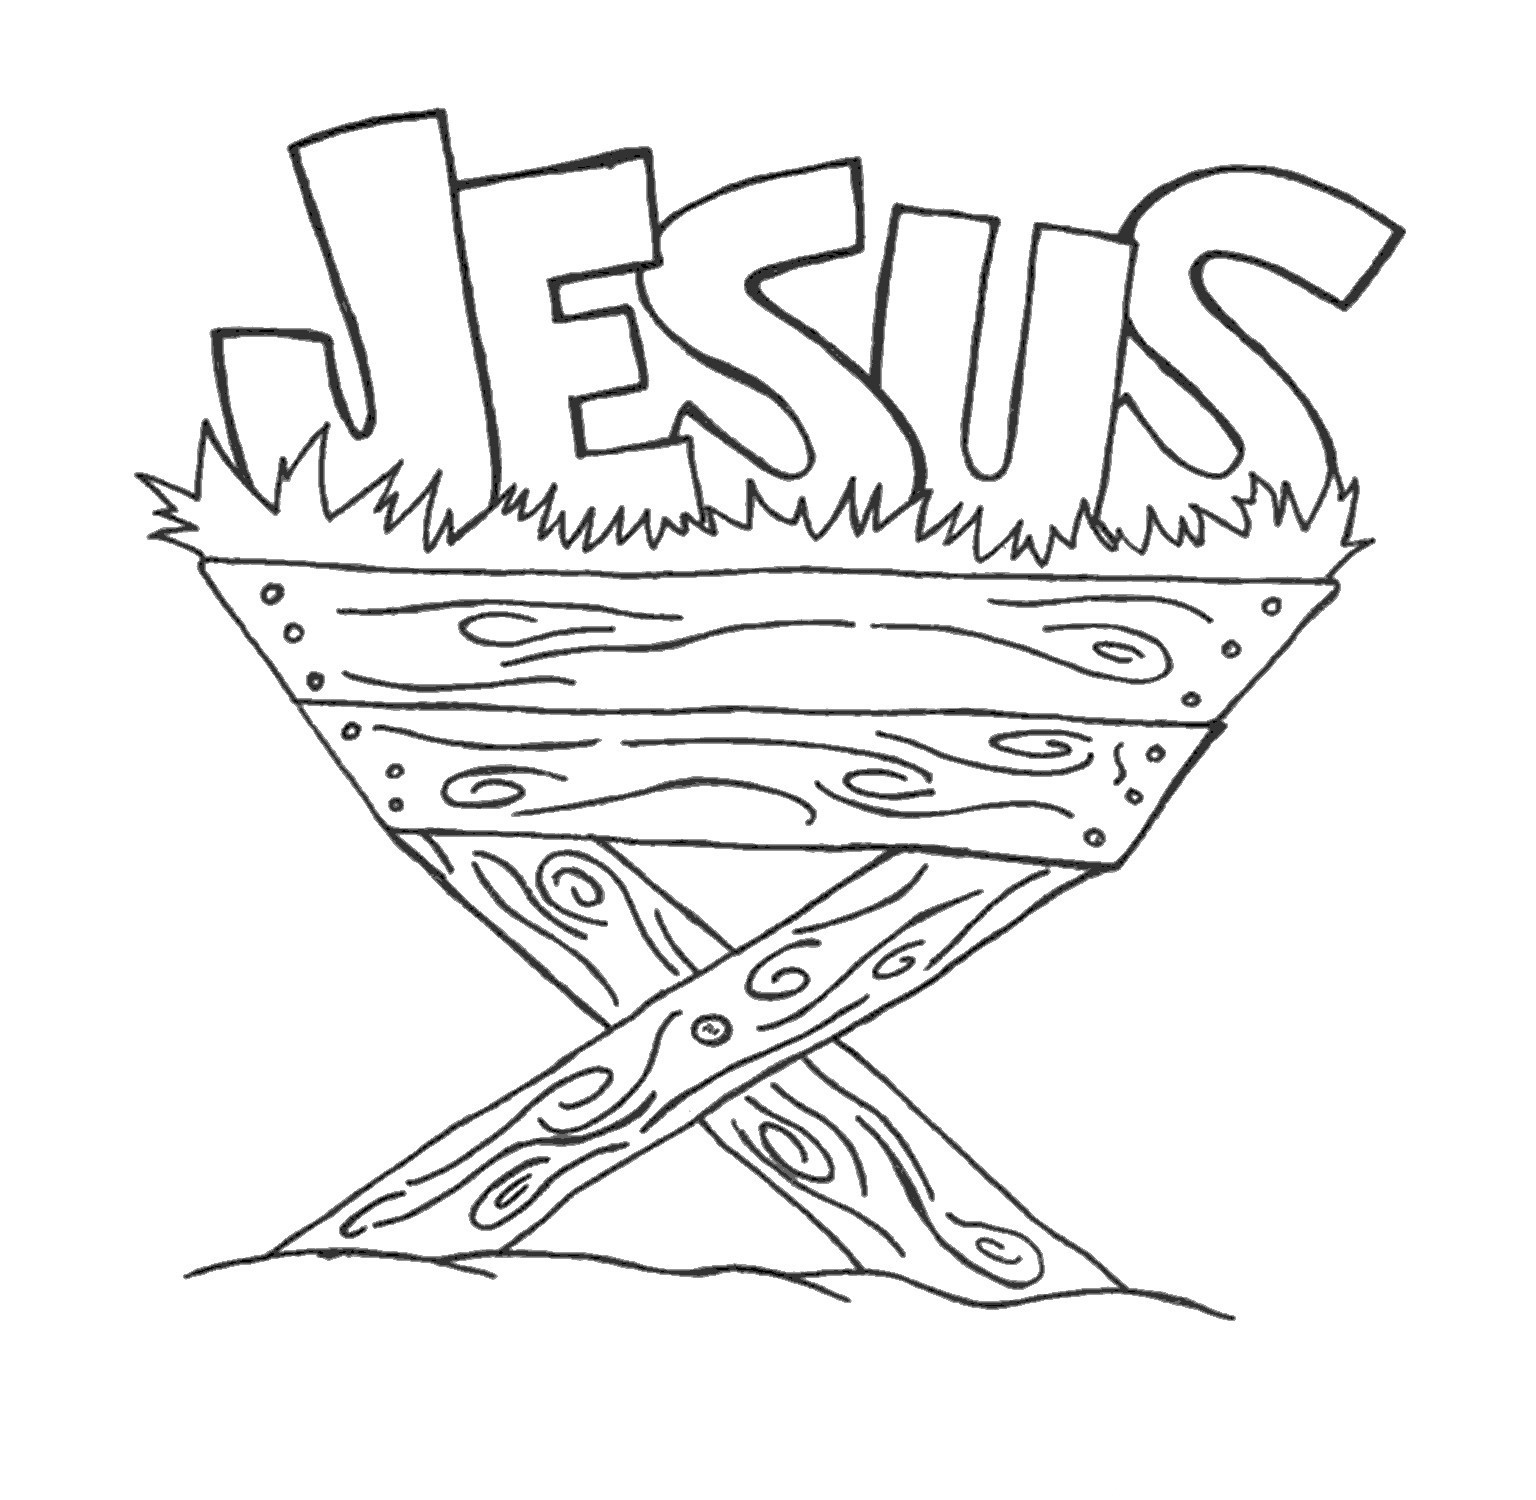 bible outline coloring pages - photo#44